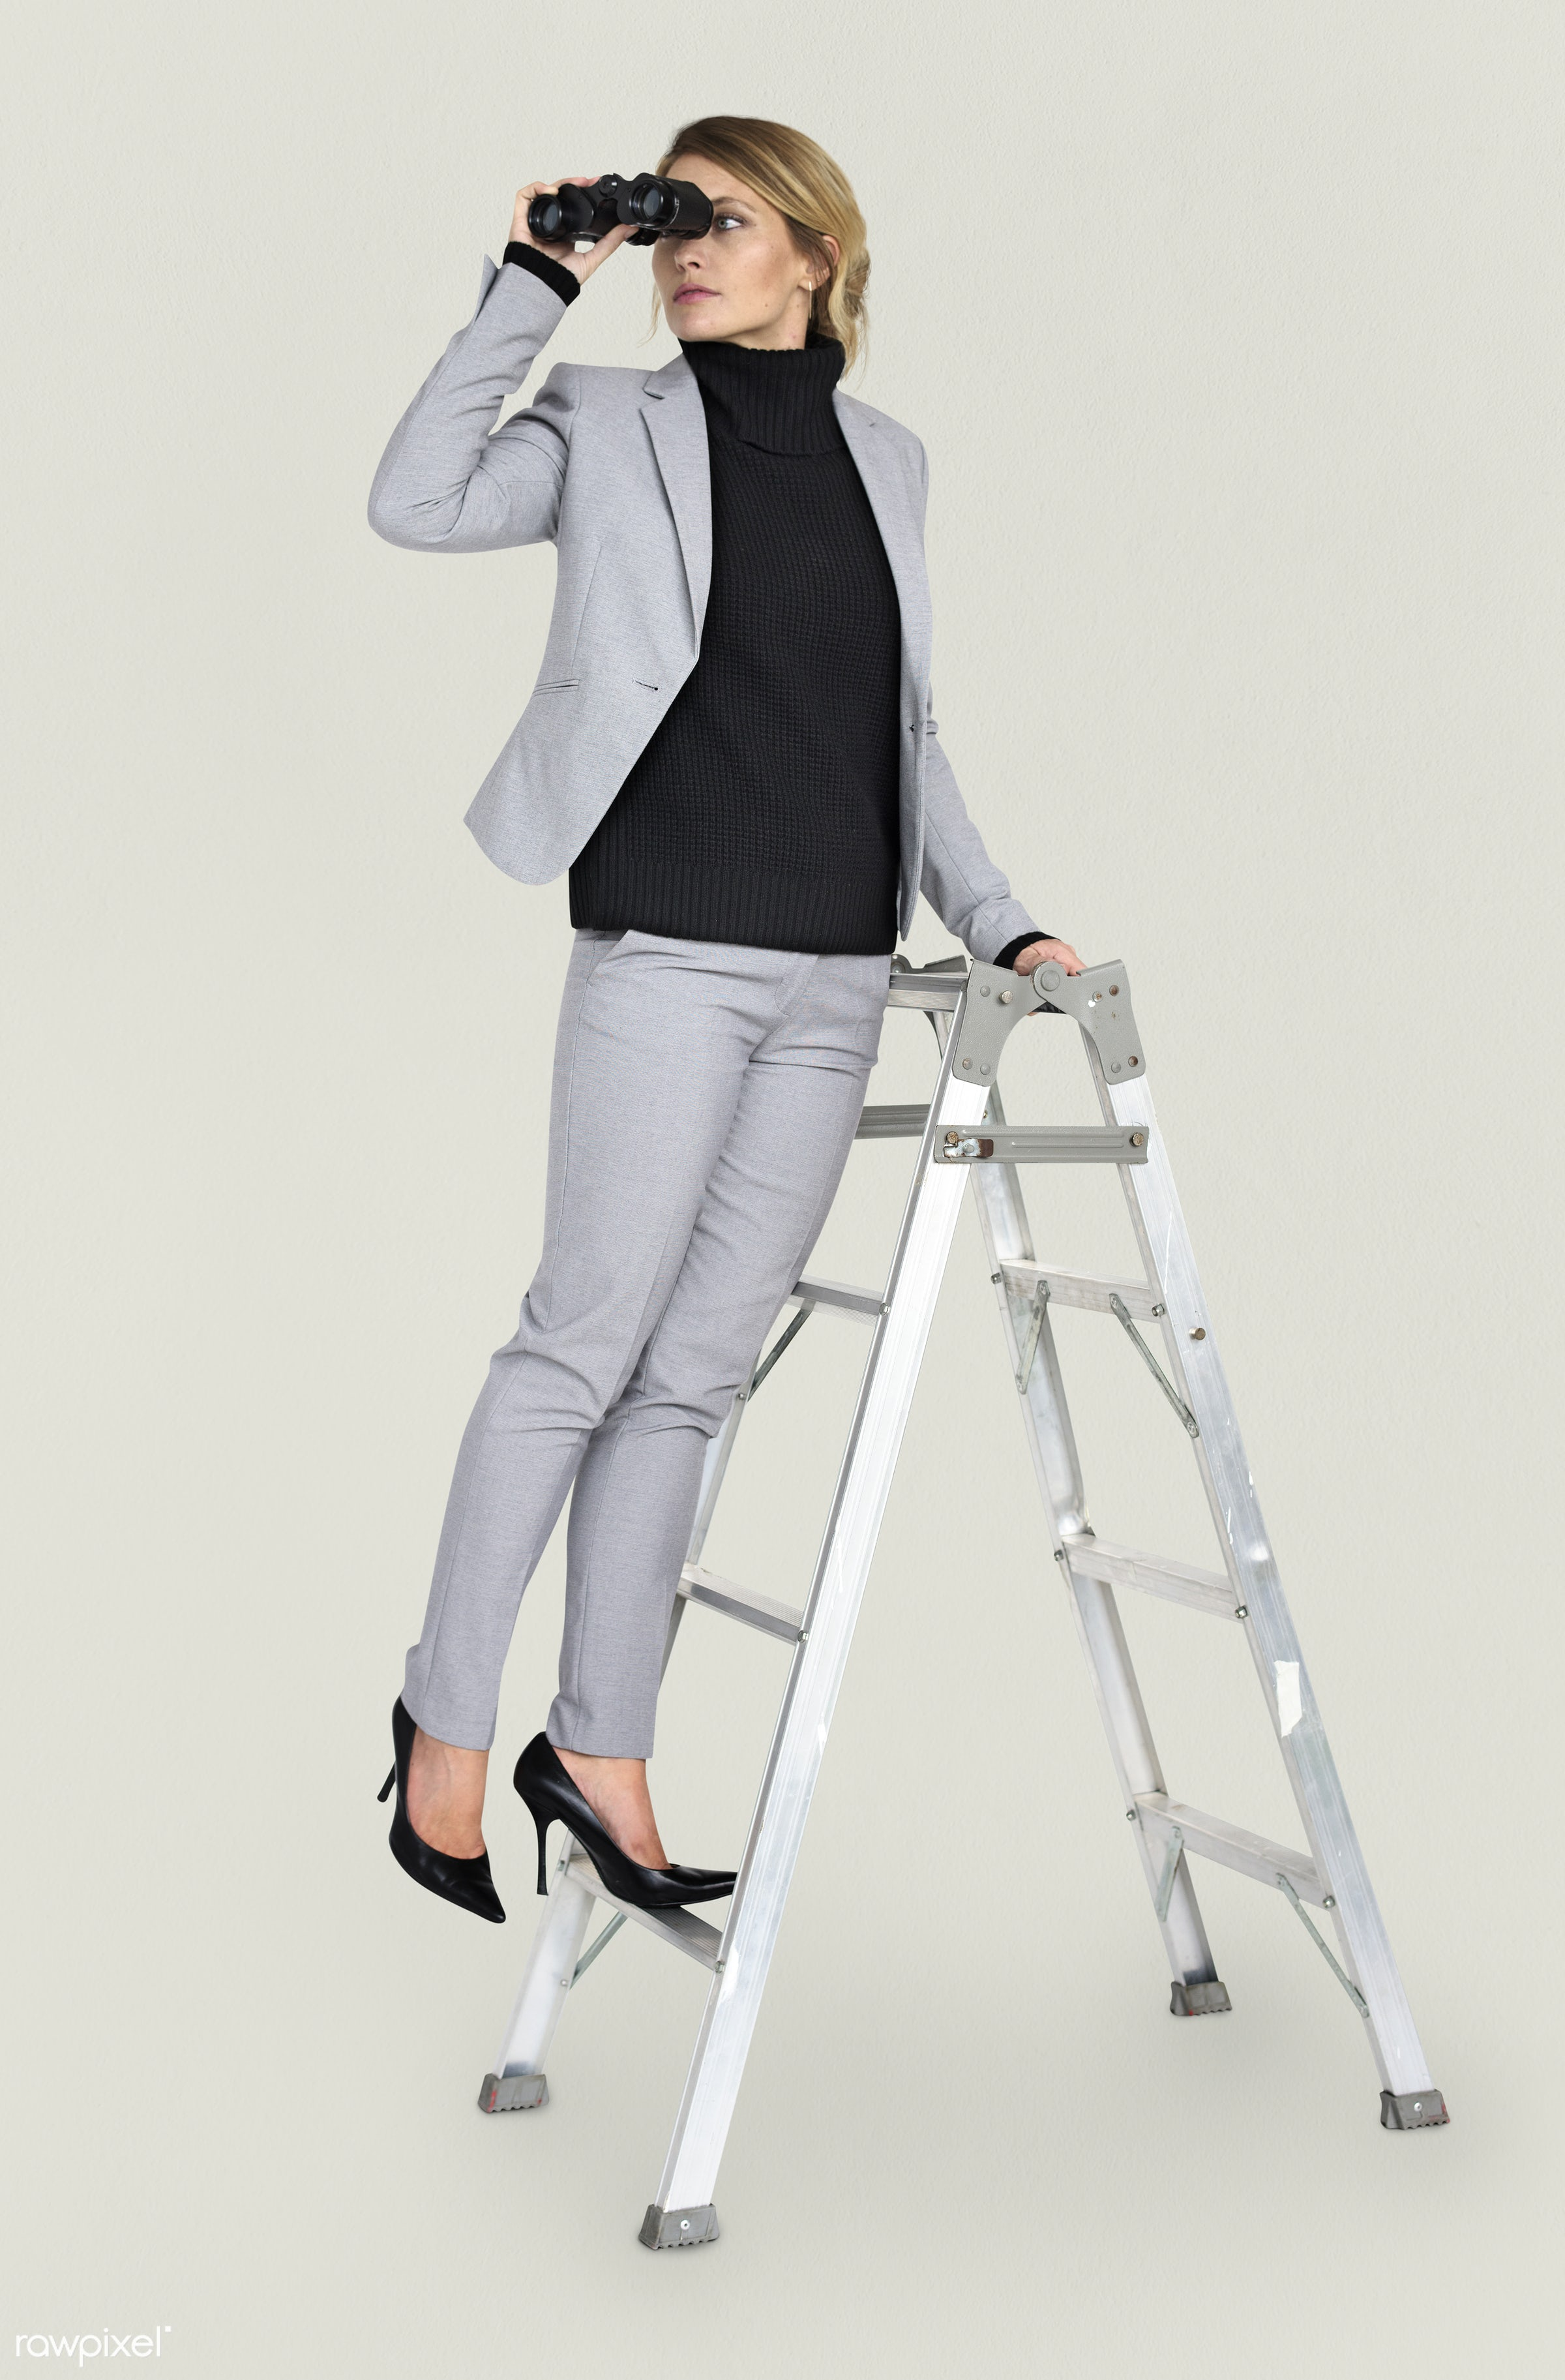 expression, studio, person, business wear, people, caucasian, looking, girl, woman, positive, formal attire, ladder, formal...